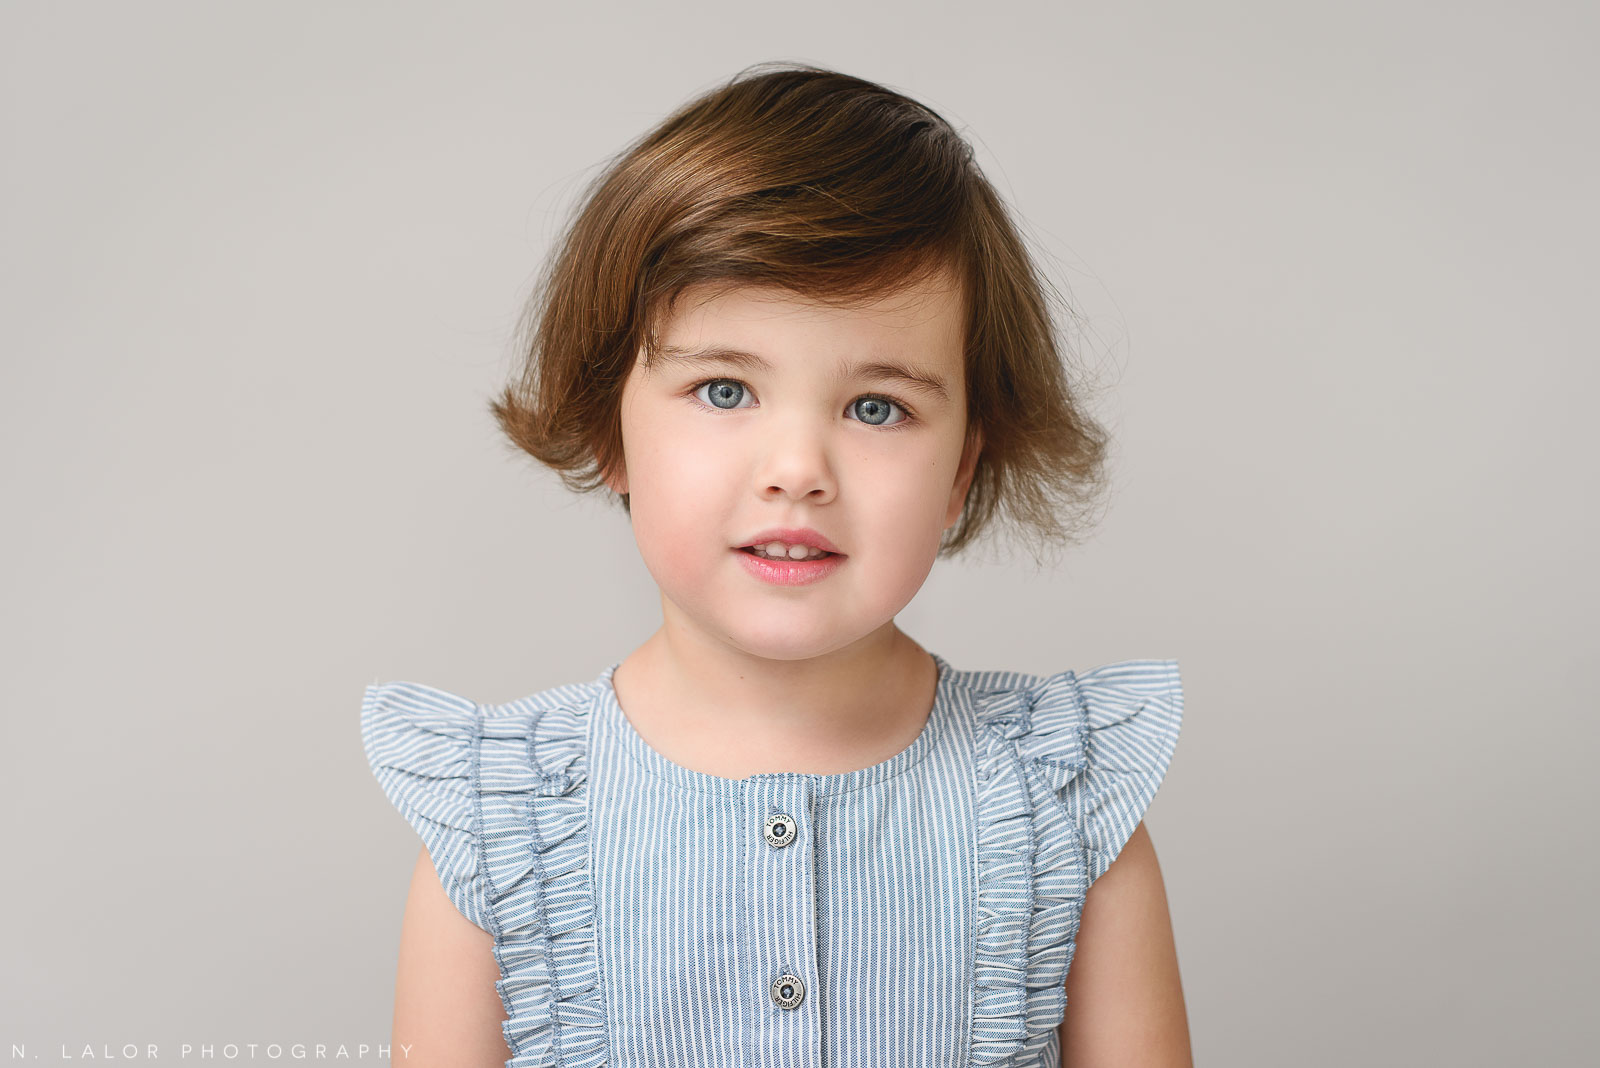 Image of a young girl looking at the camera. Portrait by N. Lalor Photography in Greenwich, Connecticut.